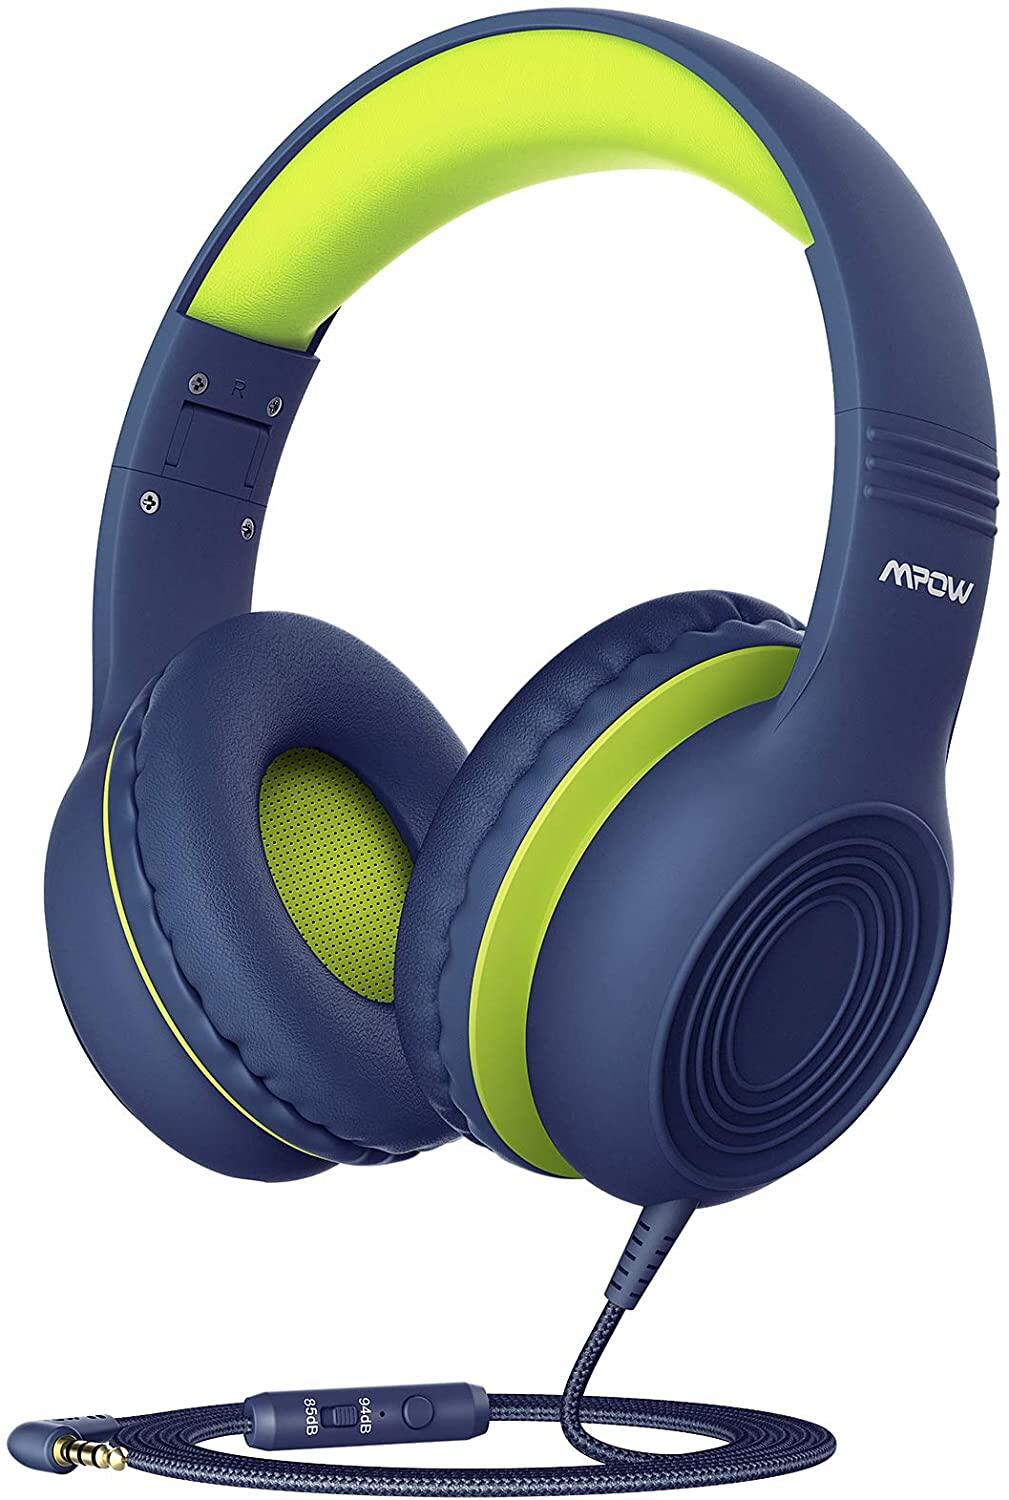 [ NEW ARRIVAL ] Mpow CH6S Kids Headphones with Microphone Over Ear, On Ear Headphones for Kids with HD Sound Sharing Function for Children Boys Girls, Volume Limit Safe 85dB,94dB Headset for School, Travel